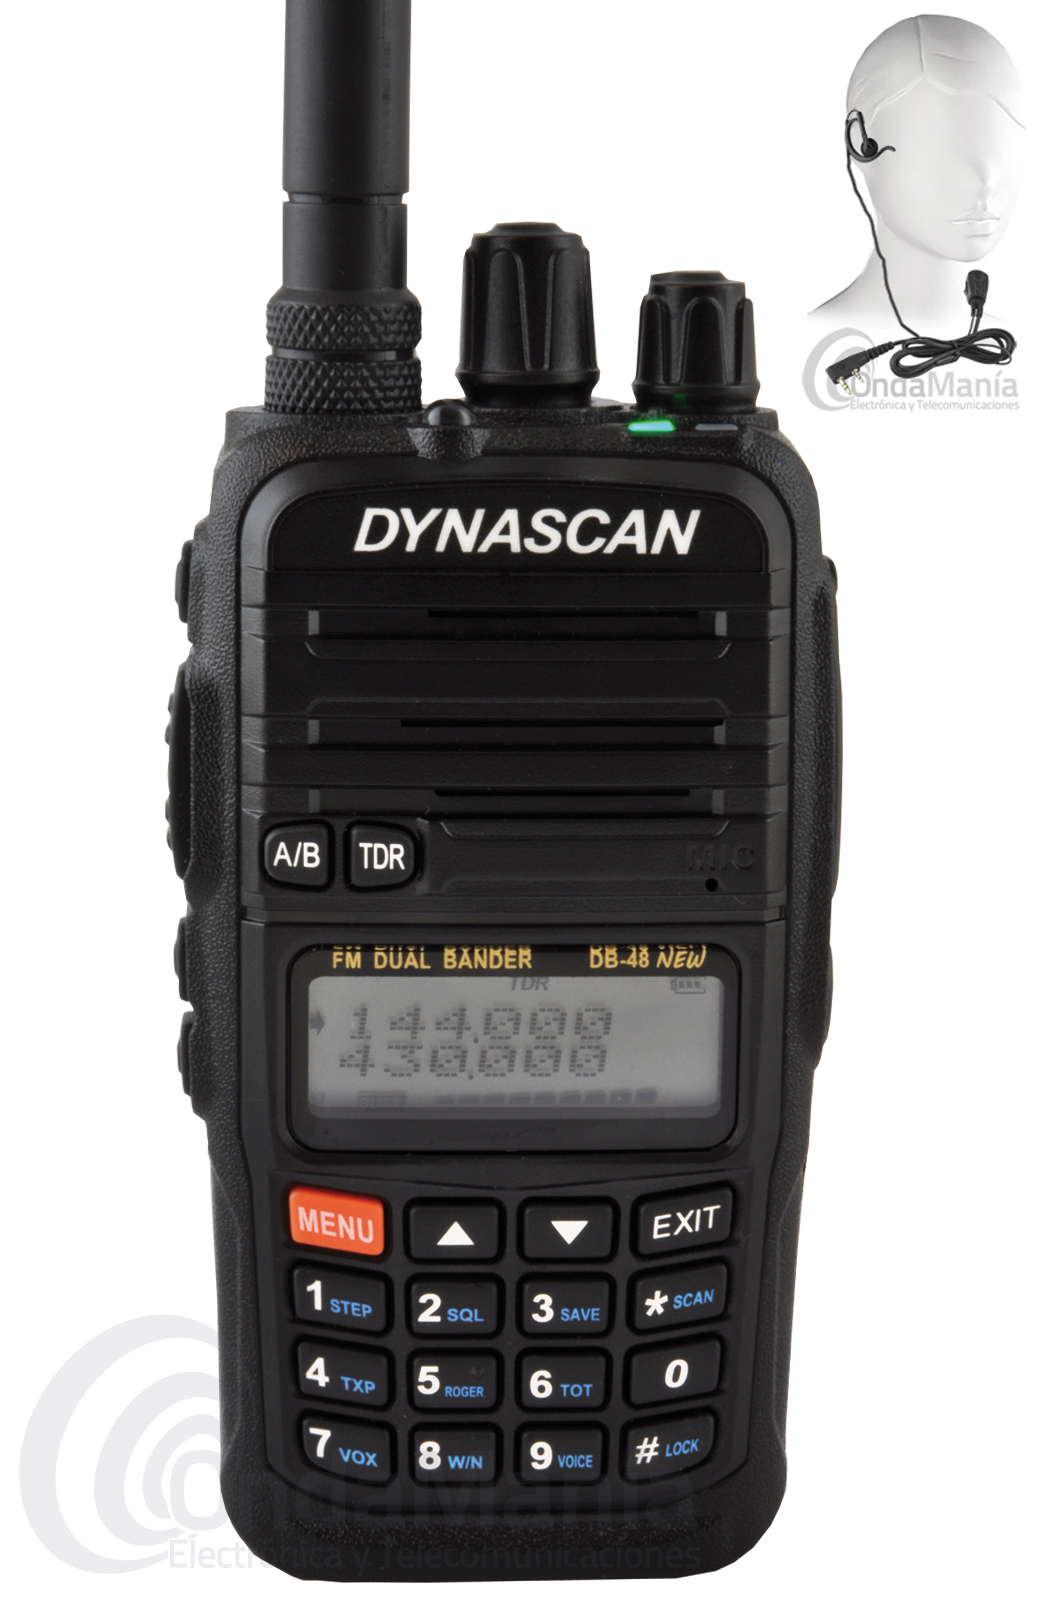 DYNASCAN DB-48 NEW WALKI TALKI DOBLE BANDA VHF-UHF PINGANILLO Y FUNDA DE REGALO